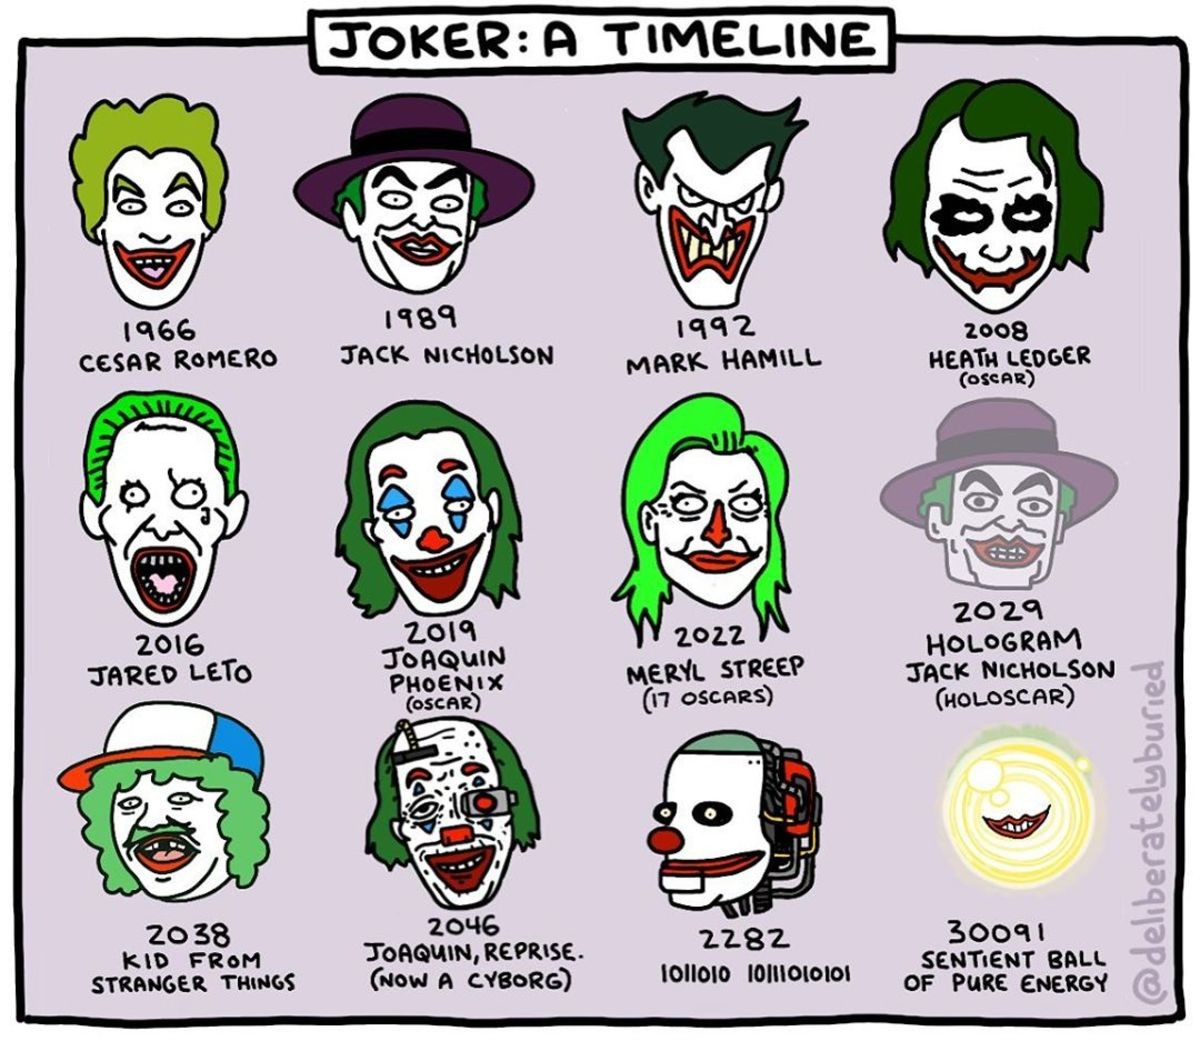 Joker incarnations. .. I liked Nicholson's portrayal.